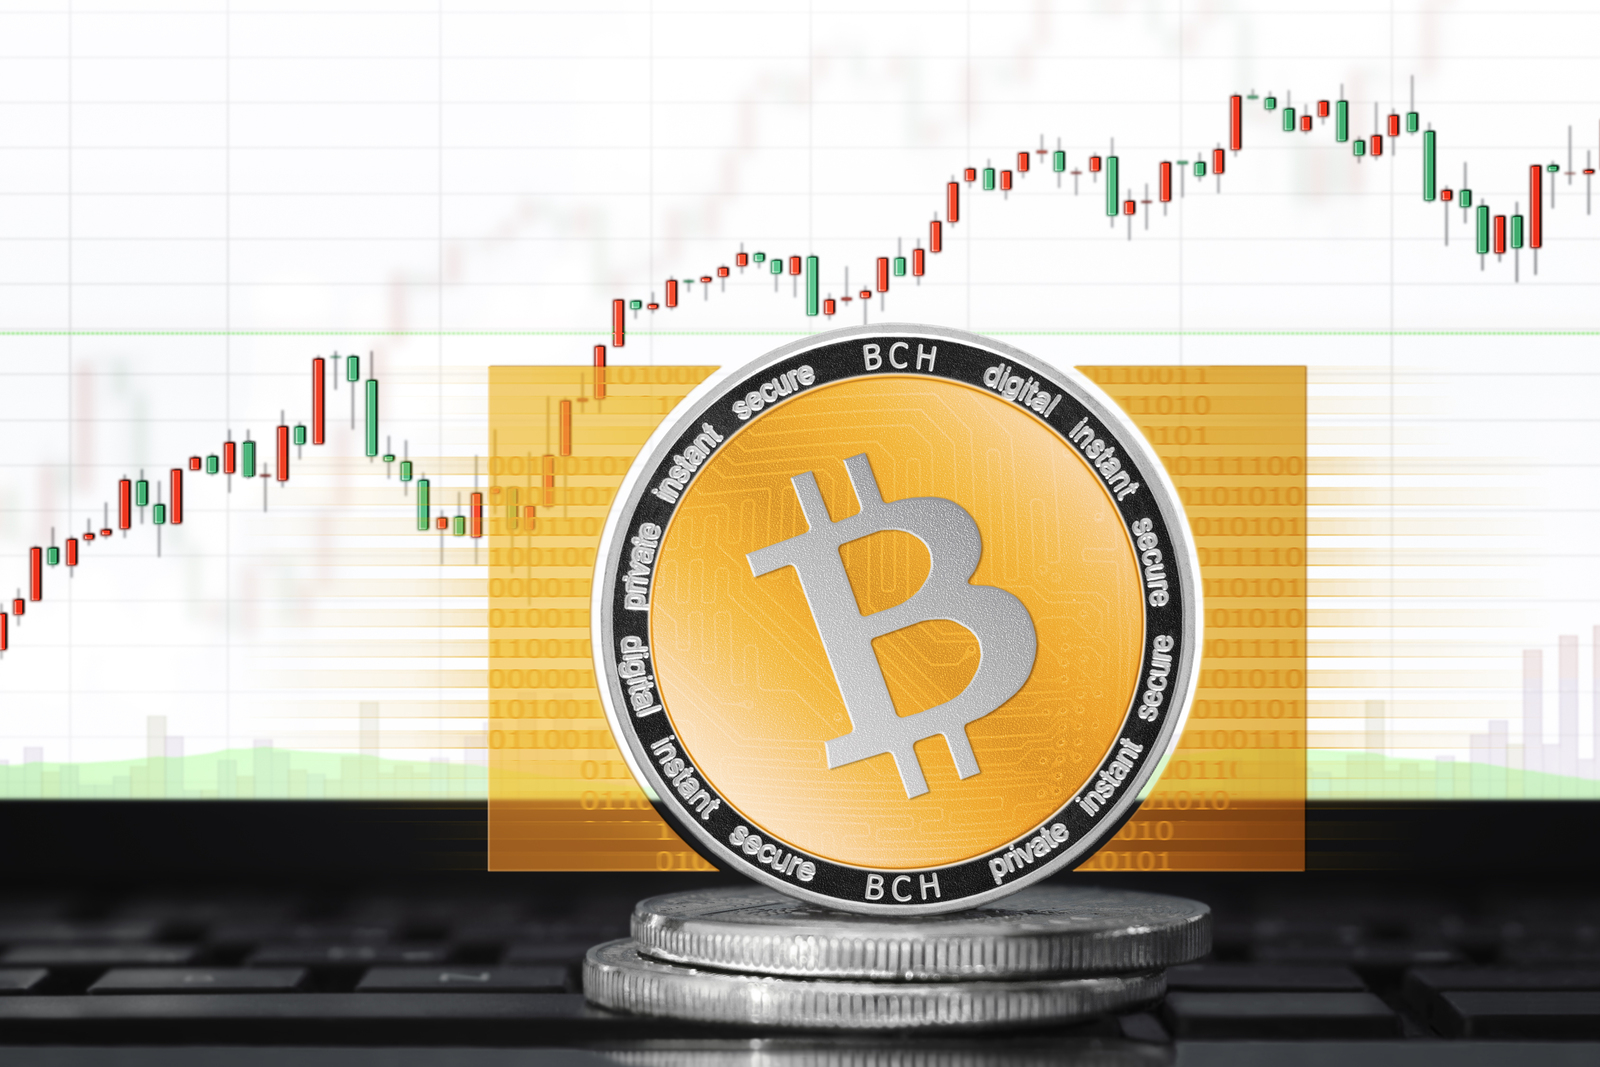 51 attack crypto currency stocks sport betting africa long list